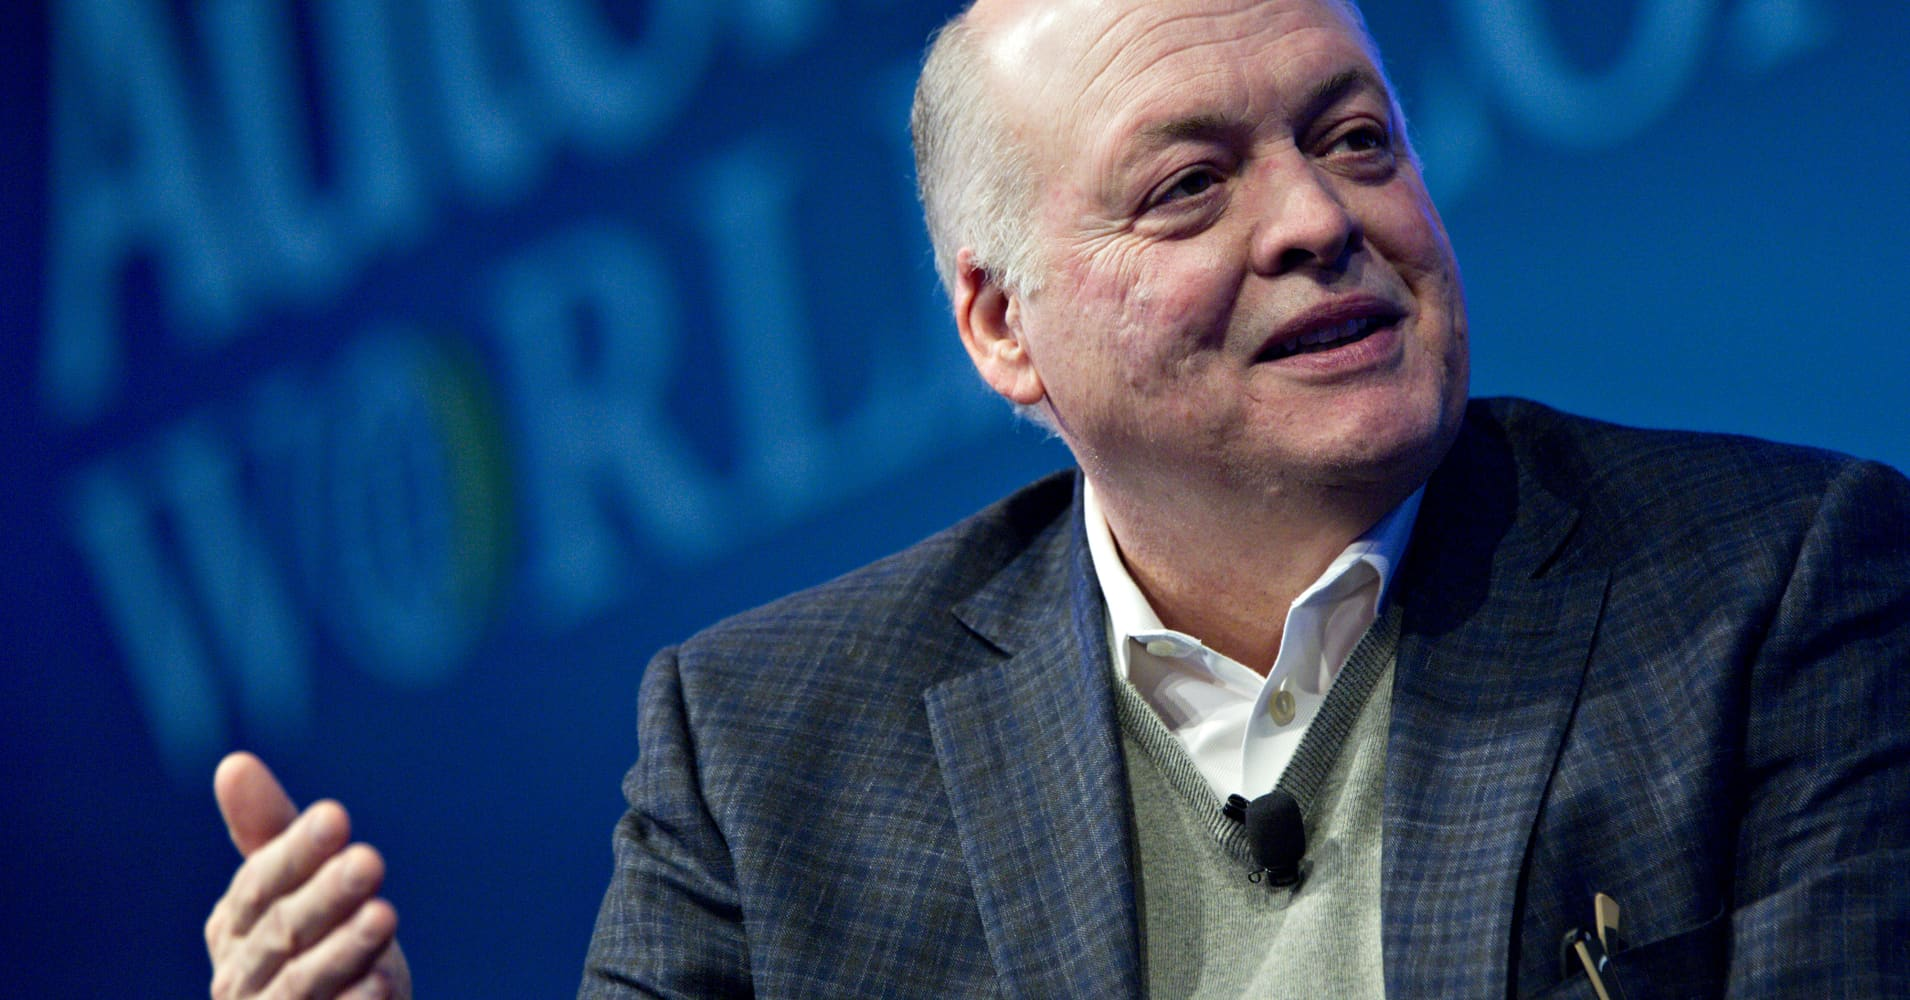 Ford CEO says a 'big surprise' coming next year with electric vehicles